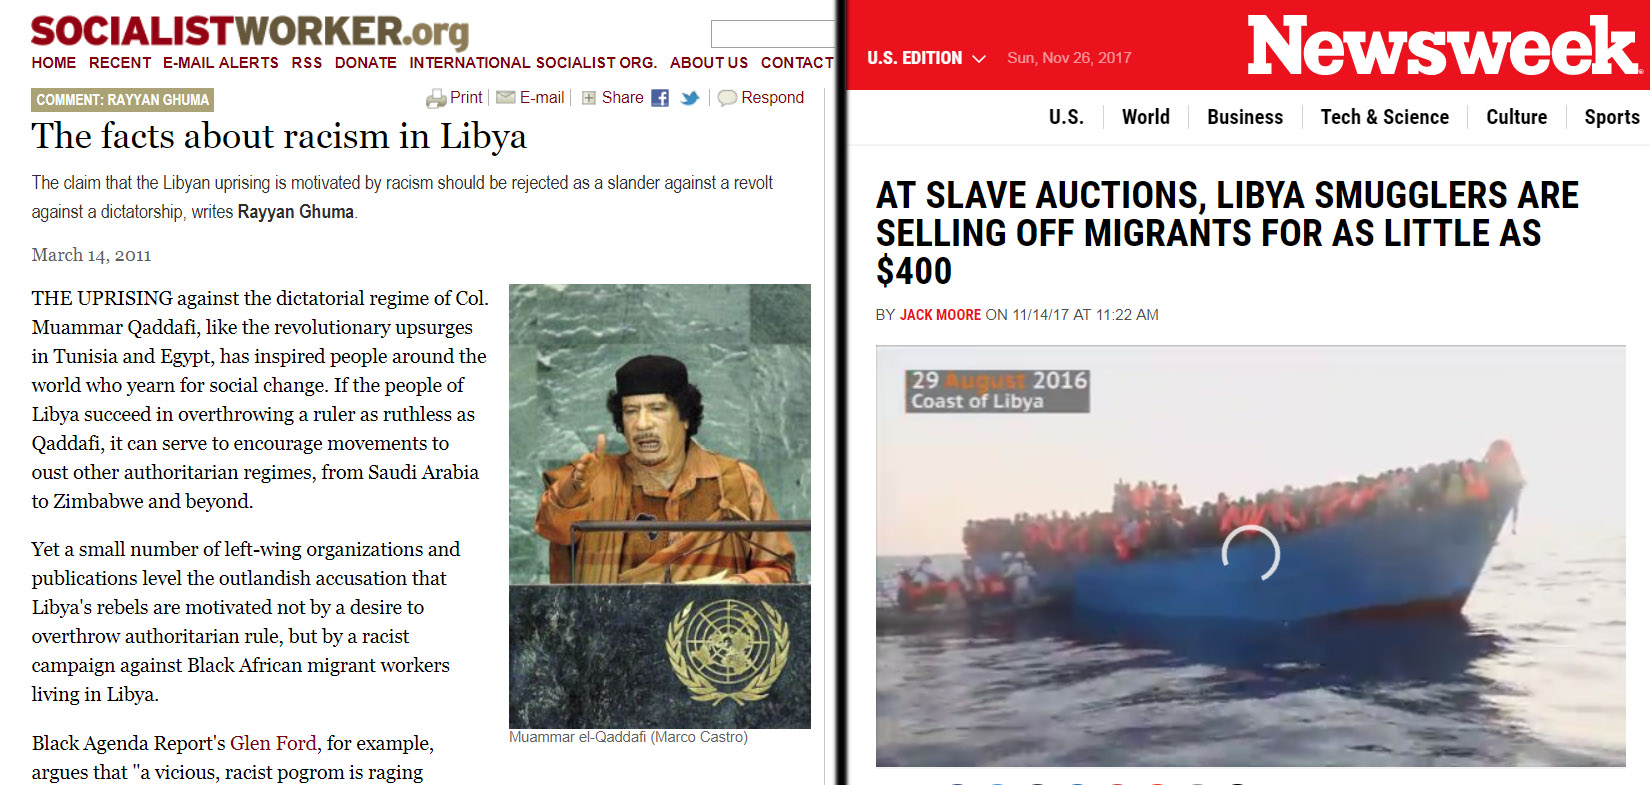 Remember when the ISO denied Libyan rebels' racism? They now have open slave markets for African refugees